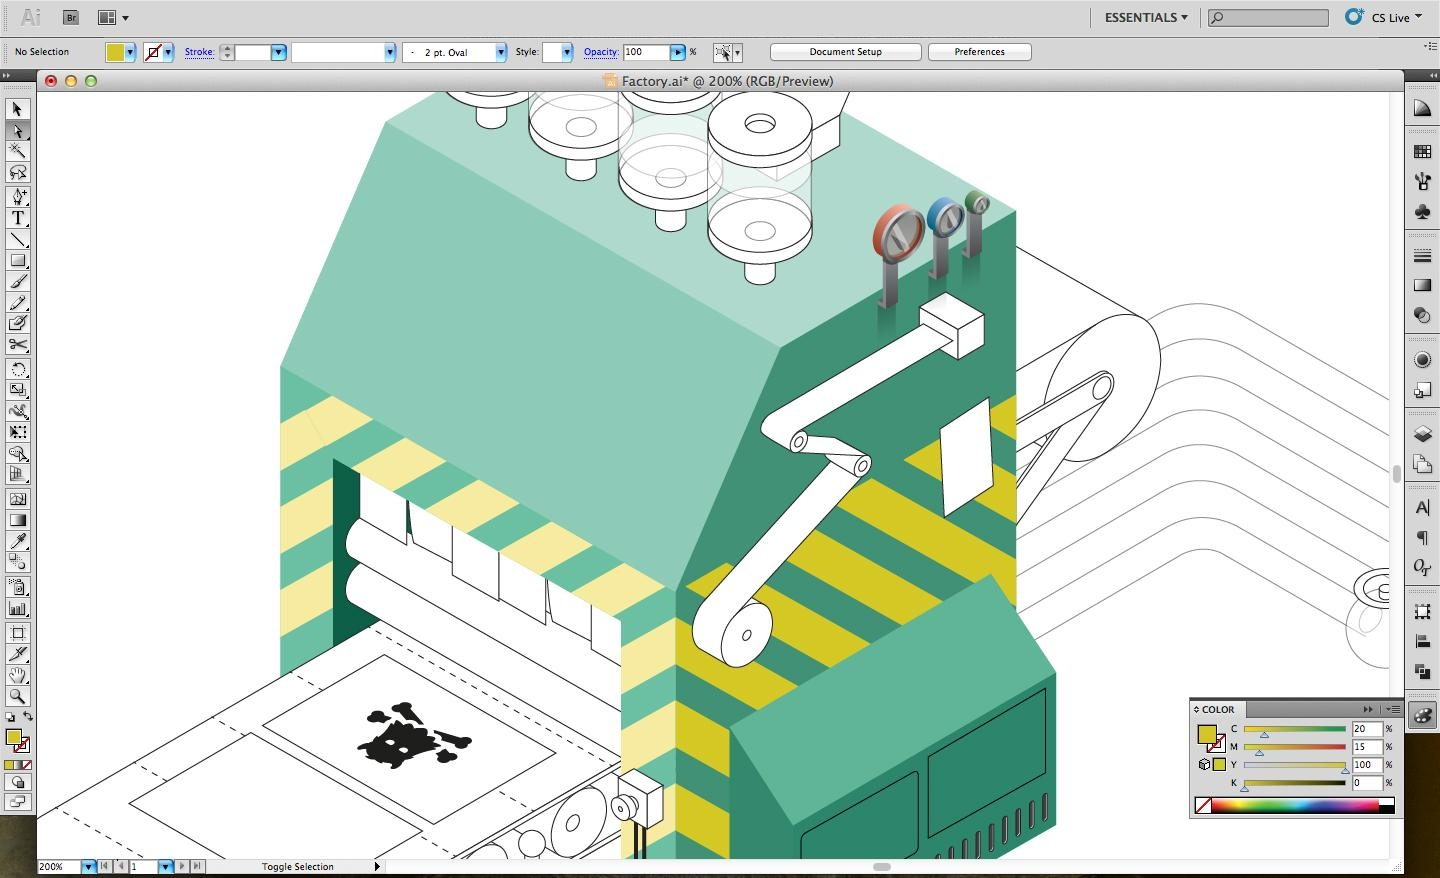 Adobe Illustrator tutorial: Design an isometric infographic